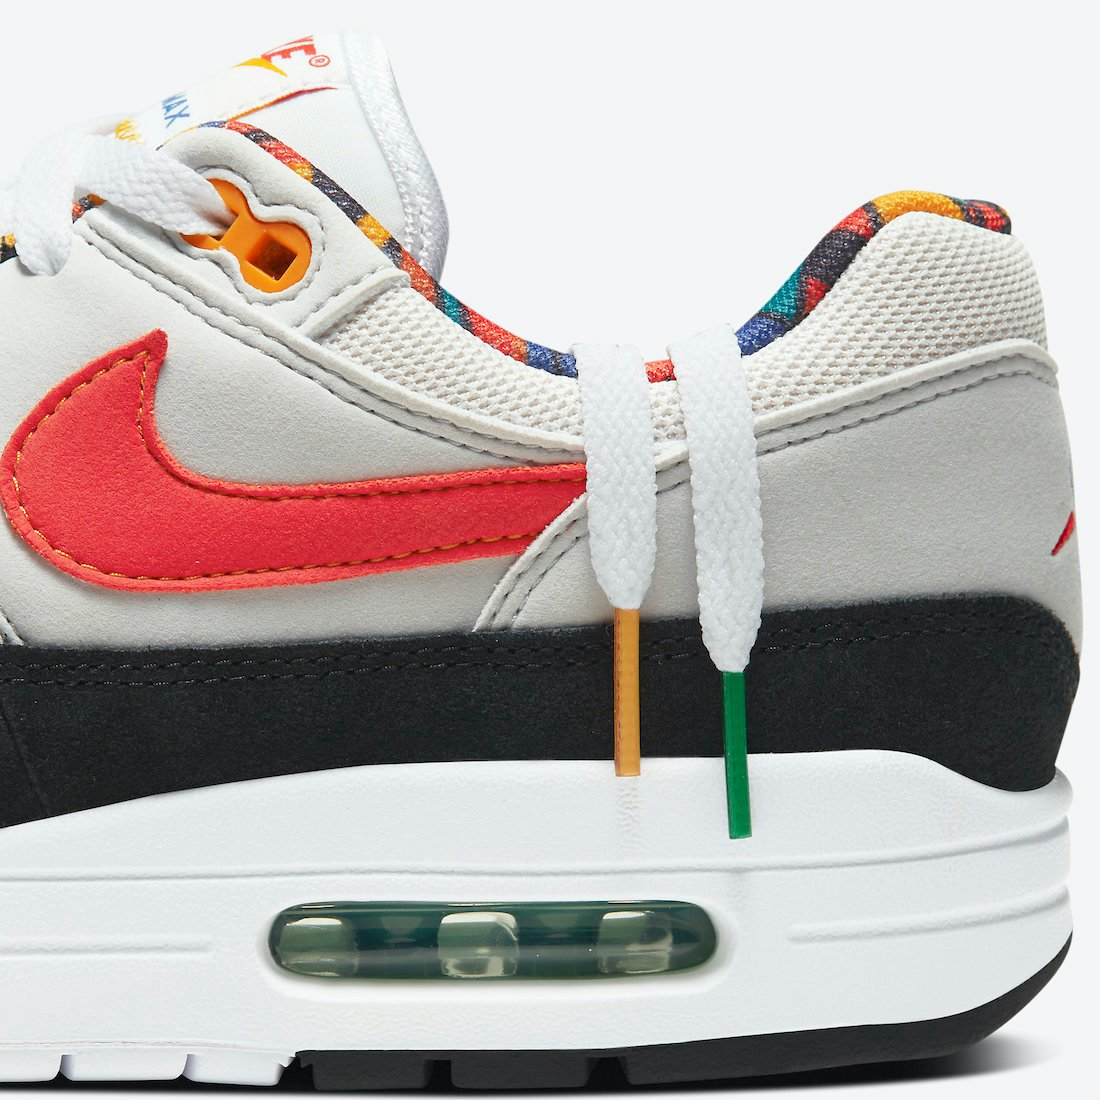 Nike Air Max 1 Live Together Play Together Urban Jungle Gym DC1478-100 Release Date Info